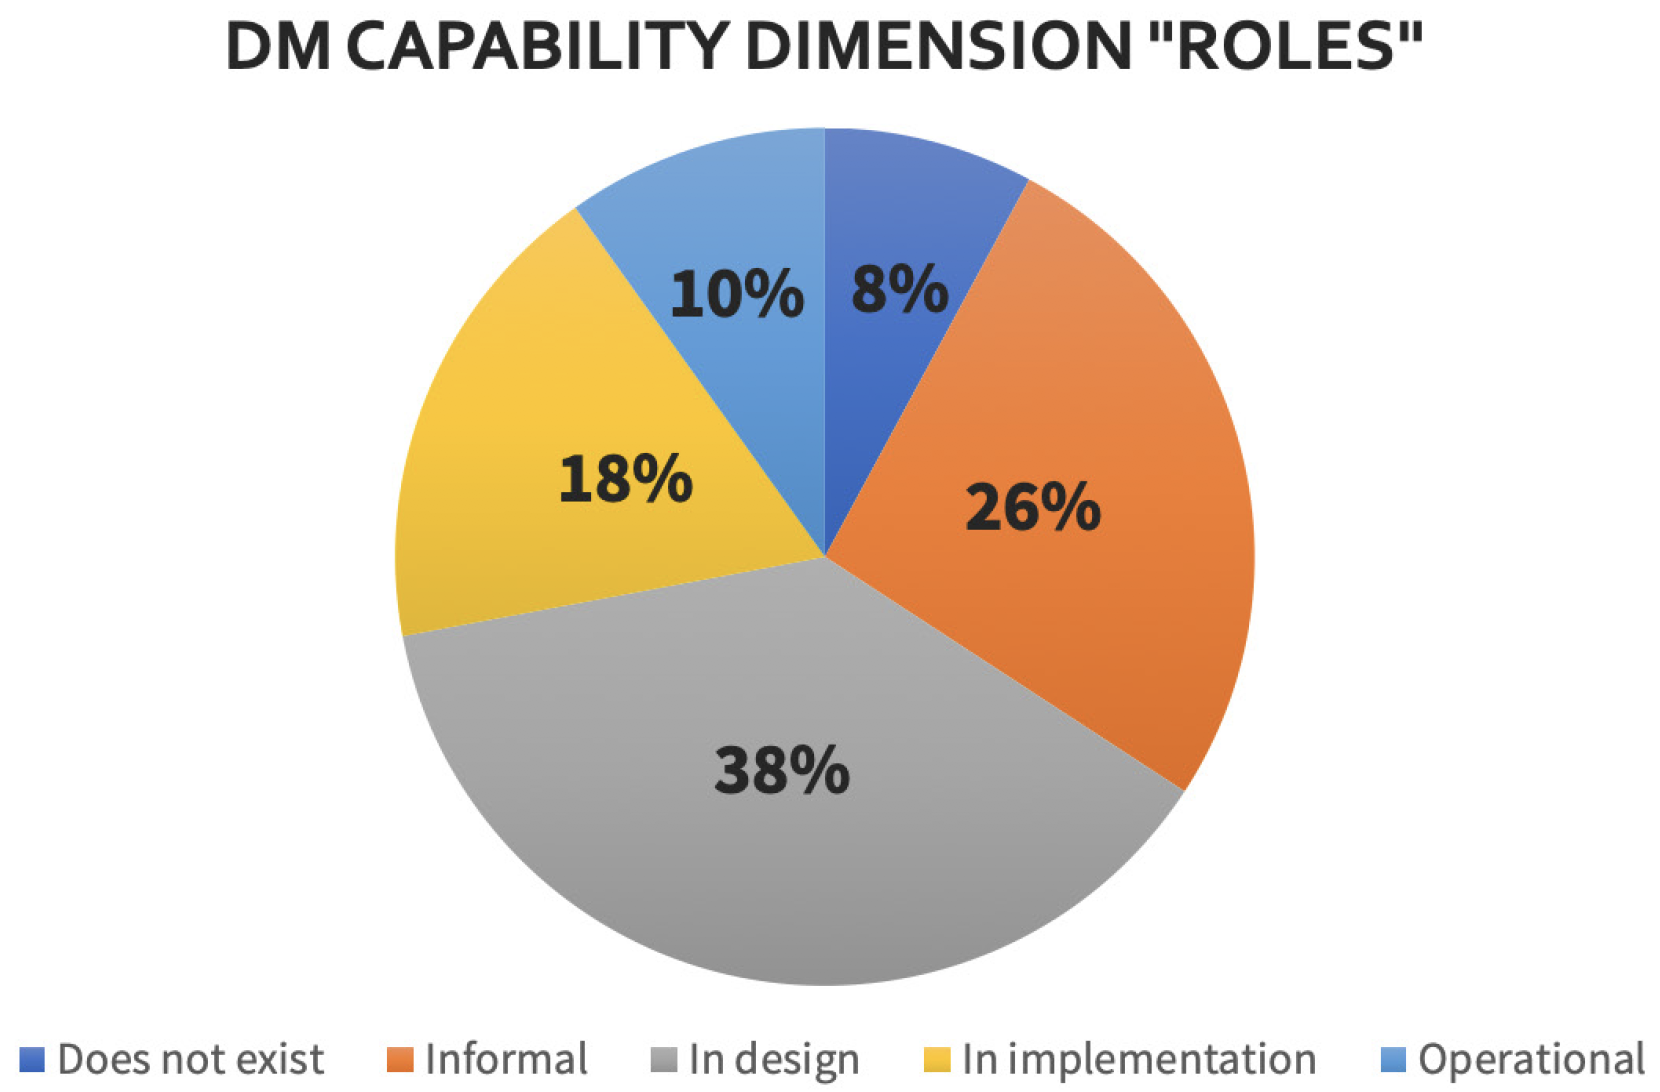 Figure 4. Distribution of maturity levels of the dimension 'role'